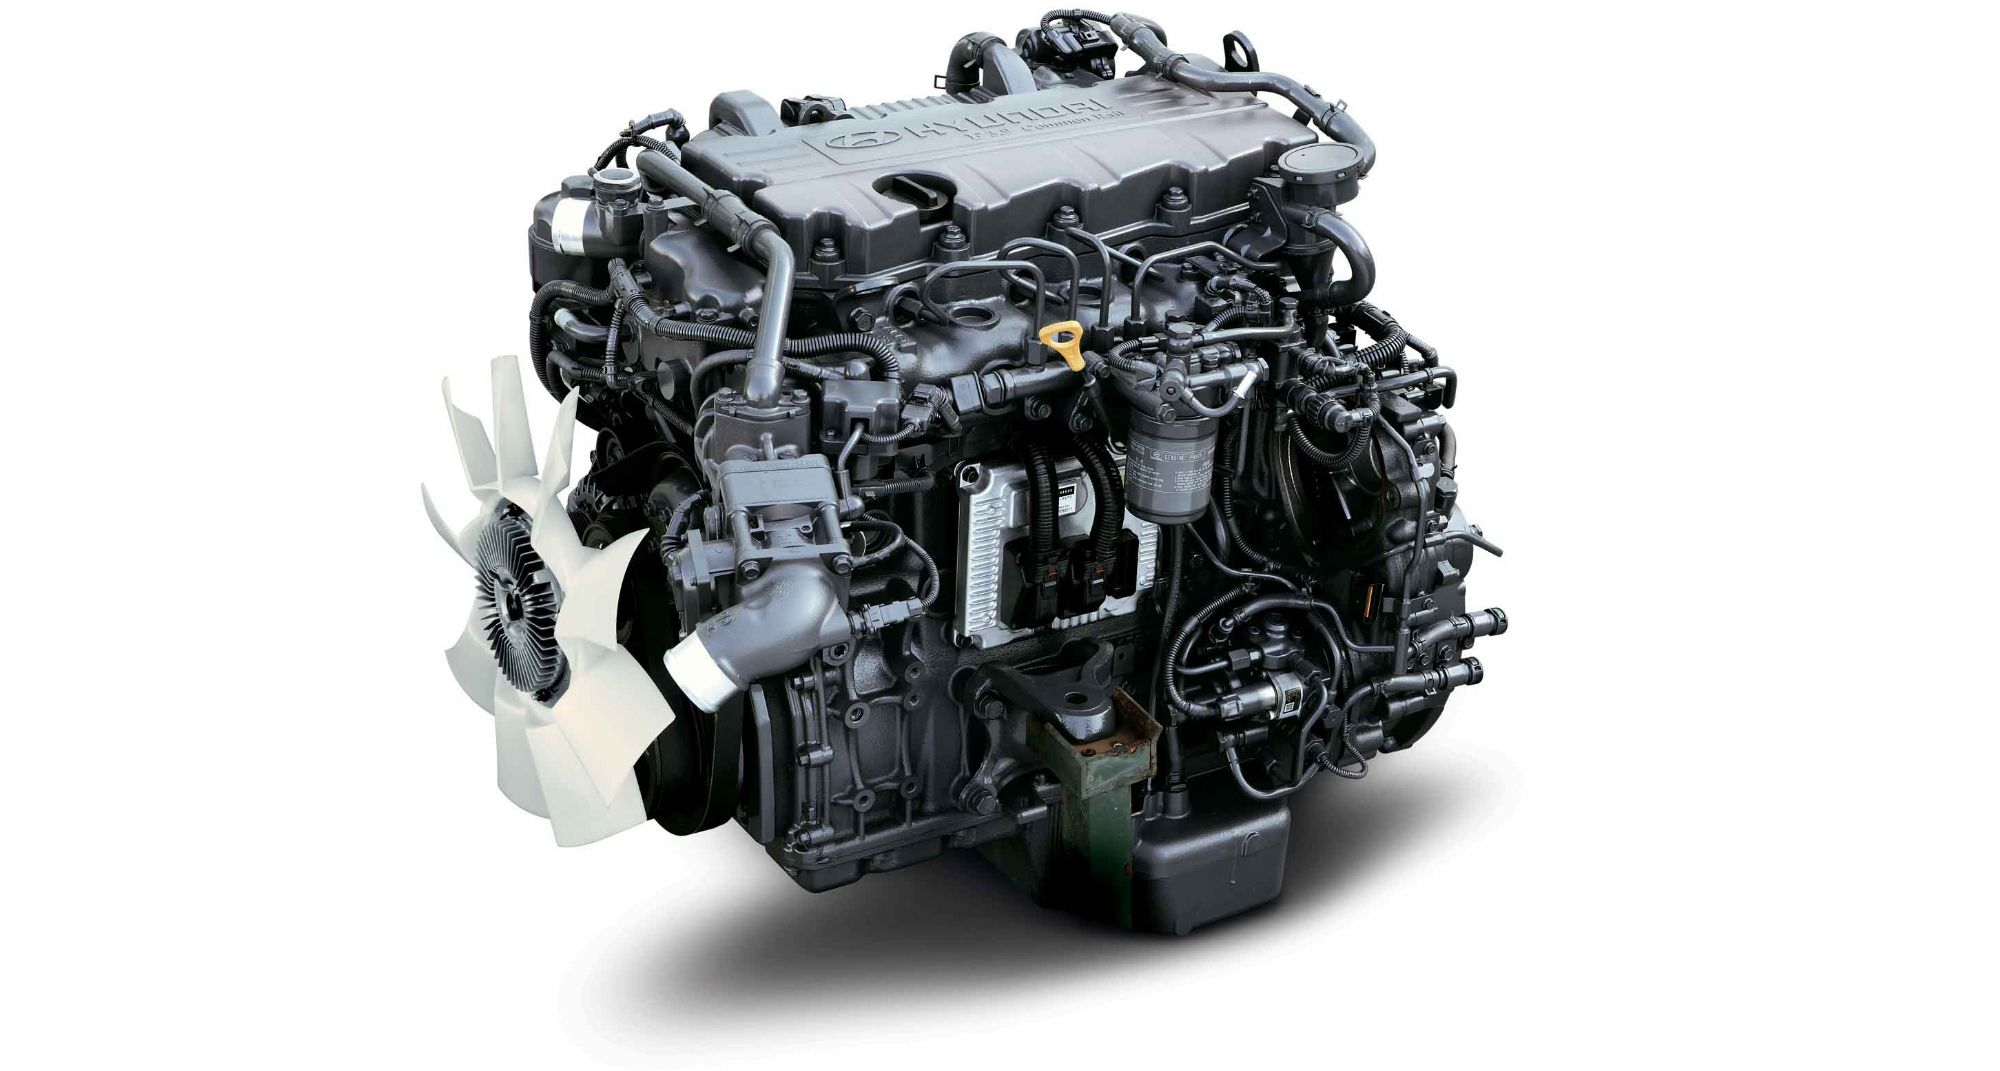 Hyundai Mighty EX4 Engine